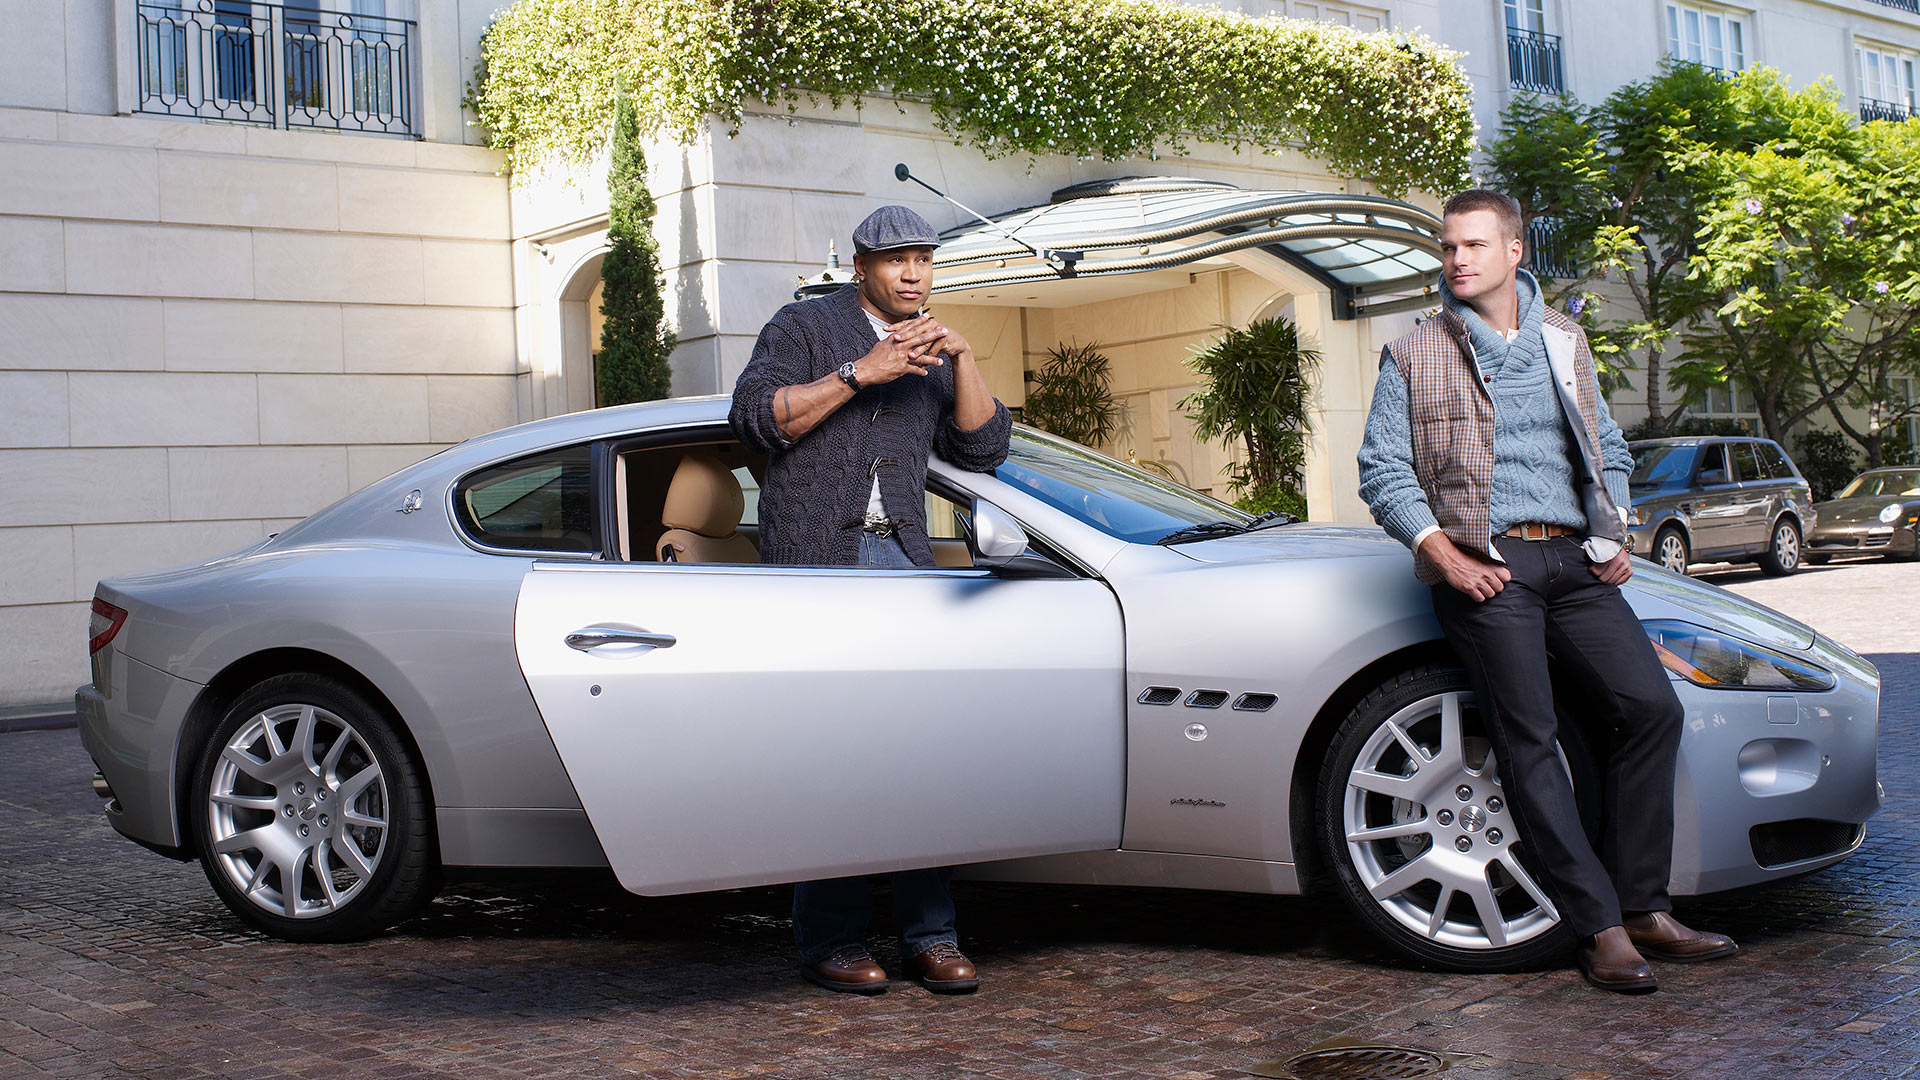 Dynamic duo LL COOL and Chris O'Donnell doing what it takes to get the shot